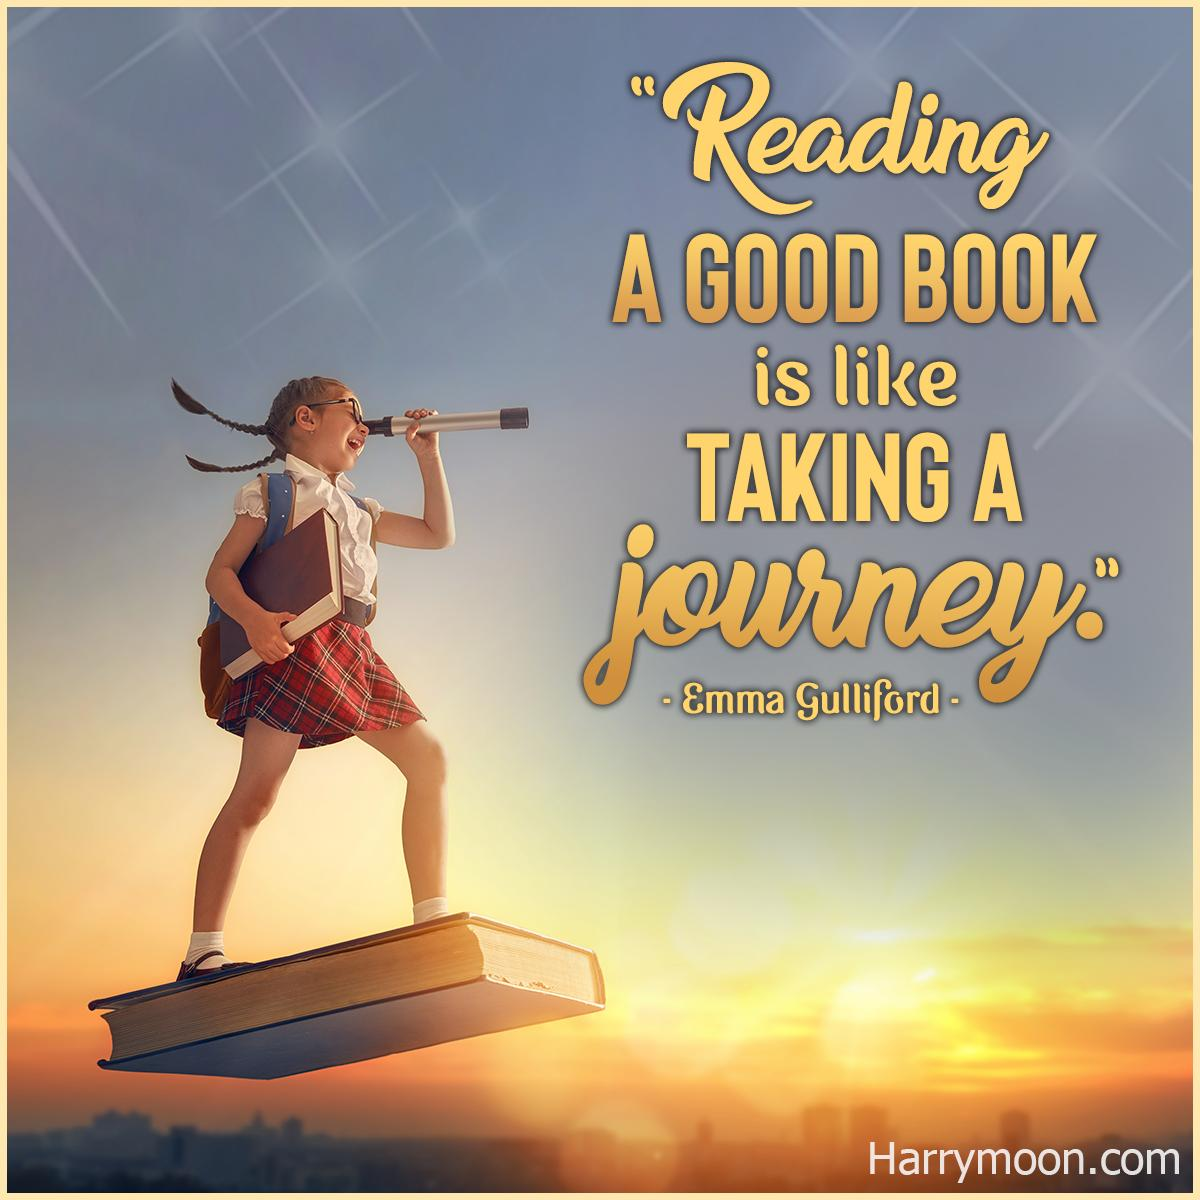 Reading a good book is like taking a journey  #bookquotes <br>http://pic.twitter.com/aH1zOZFZlv